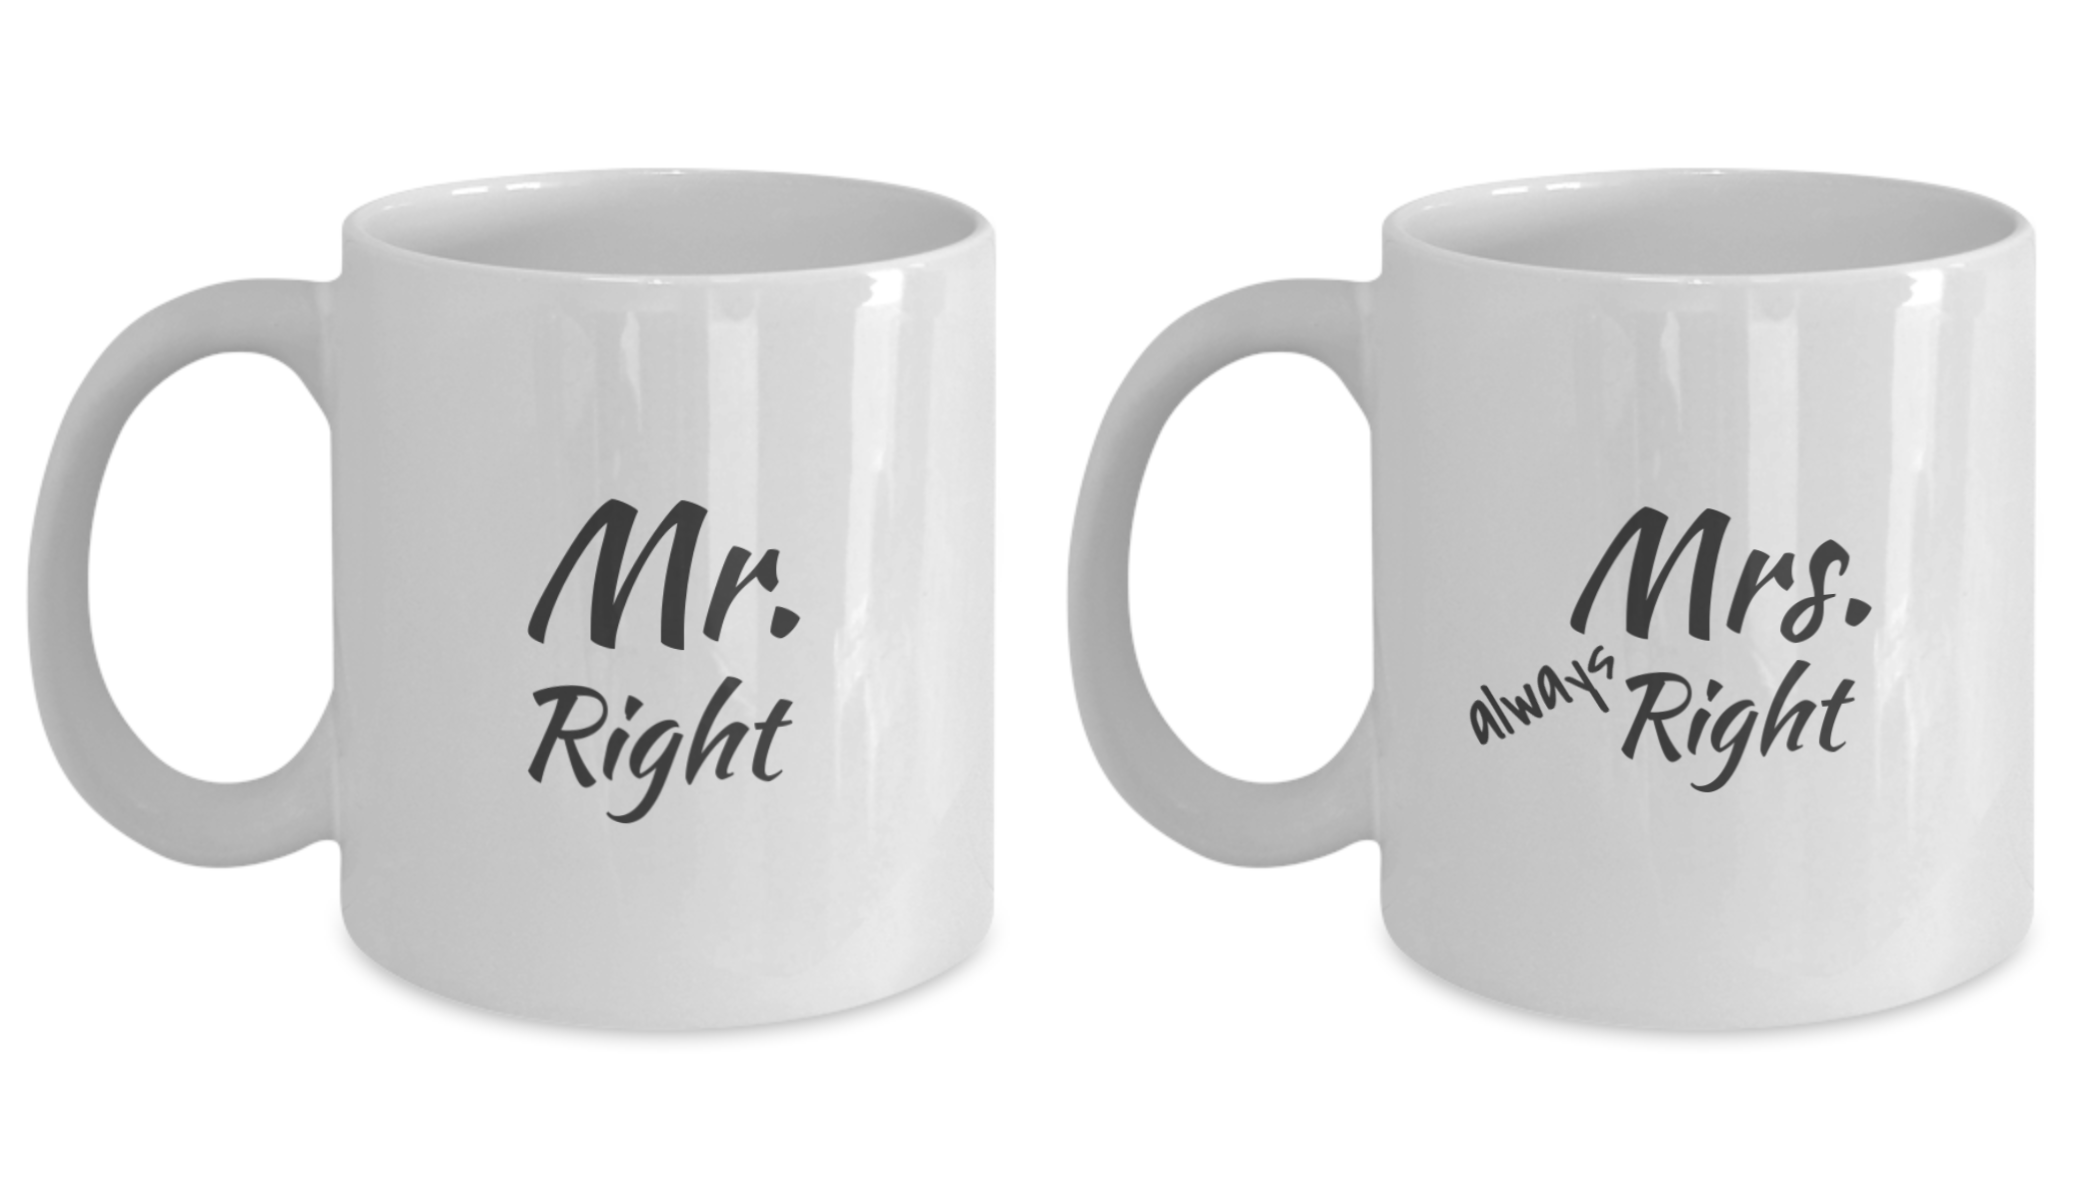 Couples Coffee Mug Sets - Engagement, Wedding & Anniversary Gifts for Fiance, Boyfriend, Girlfriend, Husband, Wife - RLT Source